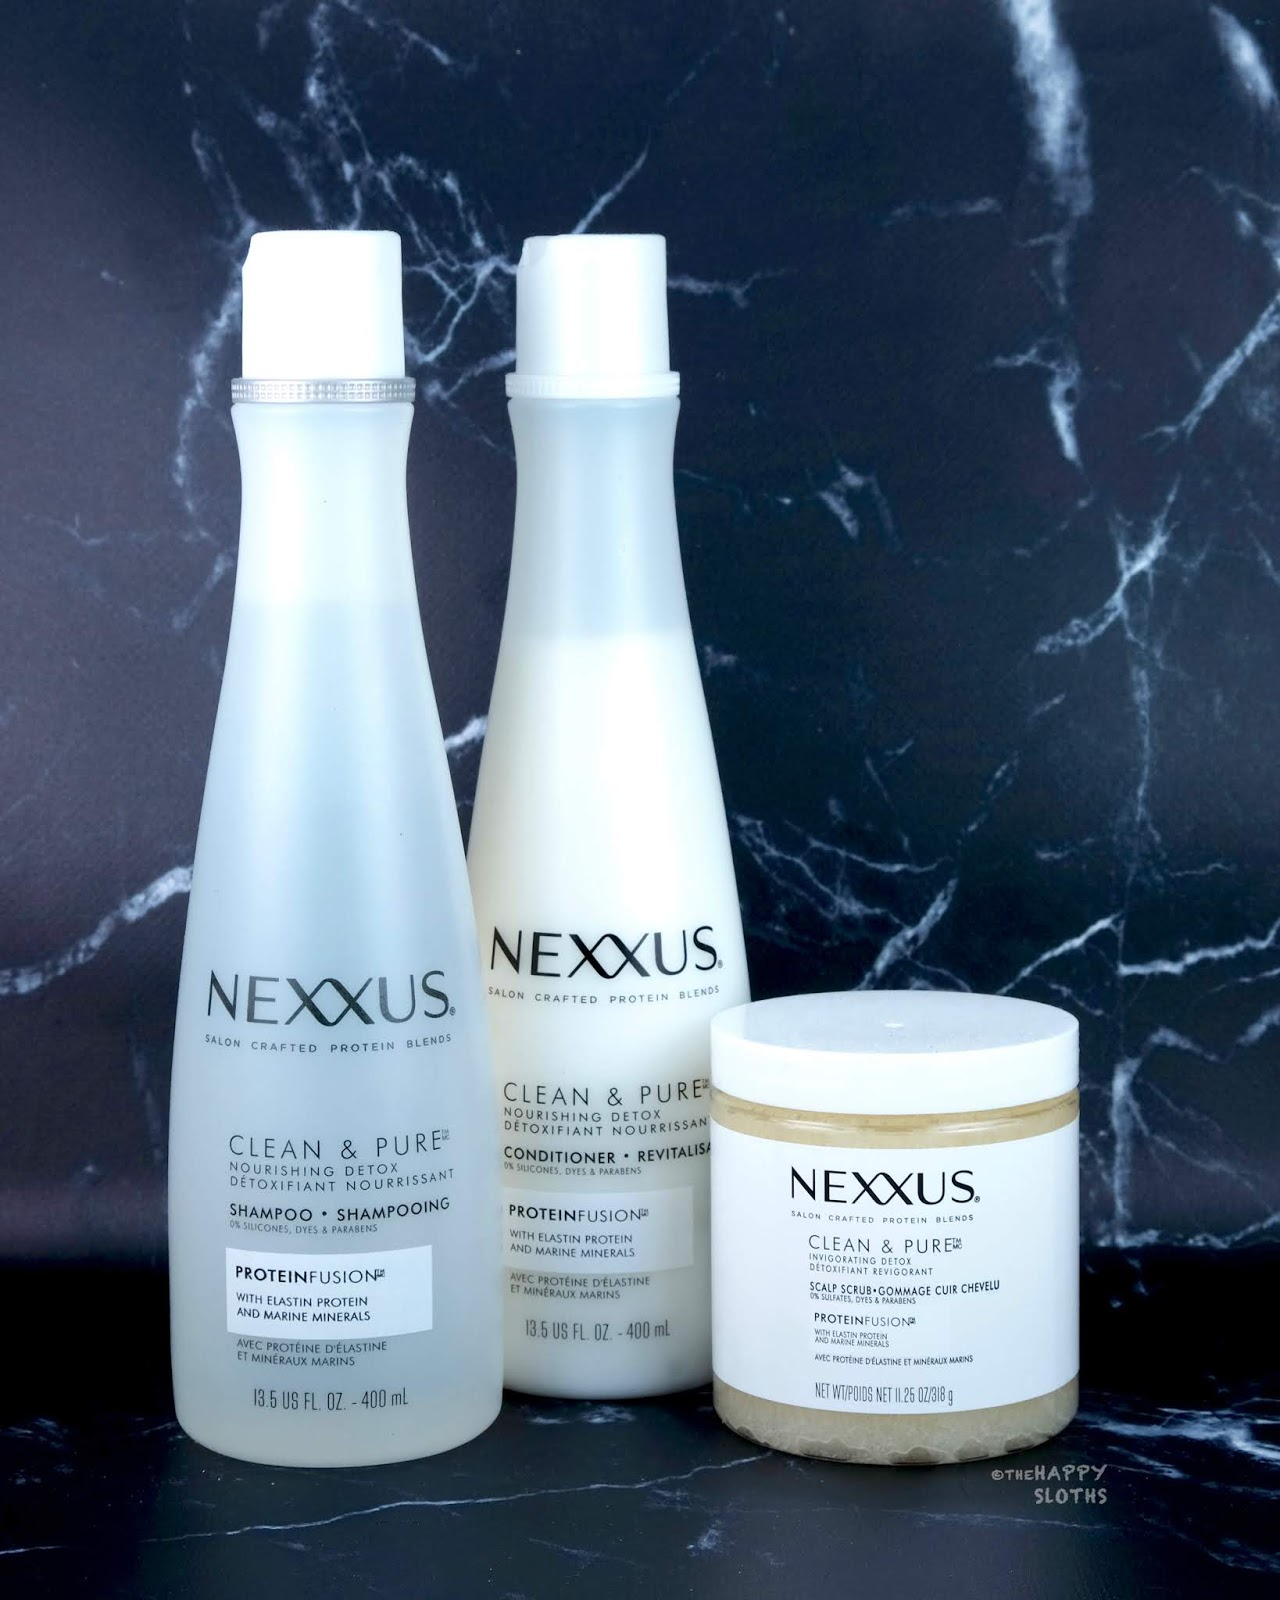 Nexxus | Clean & Pure Nourishing Detox Shampoo, Conditioner & Scalp Scrub: Review